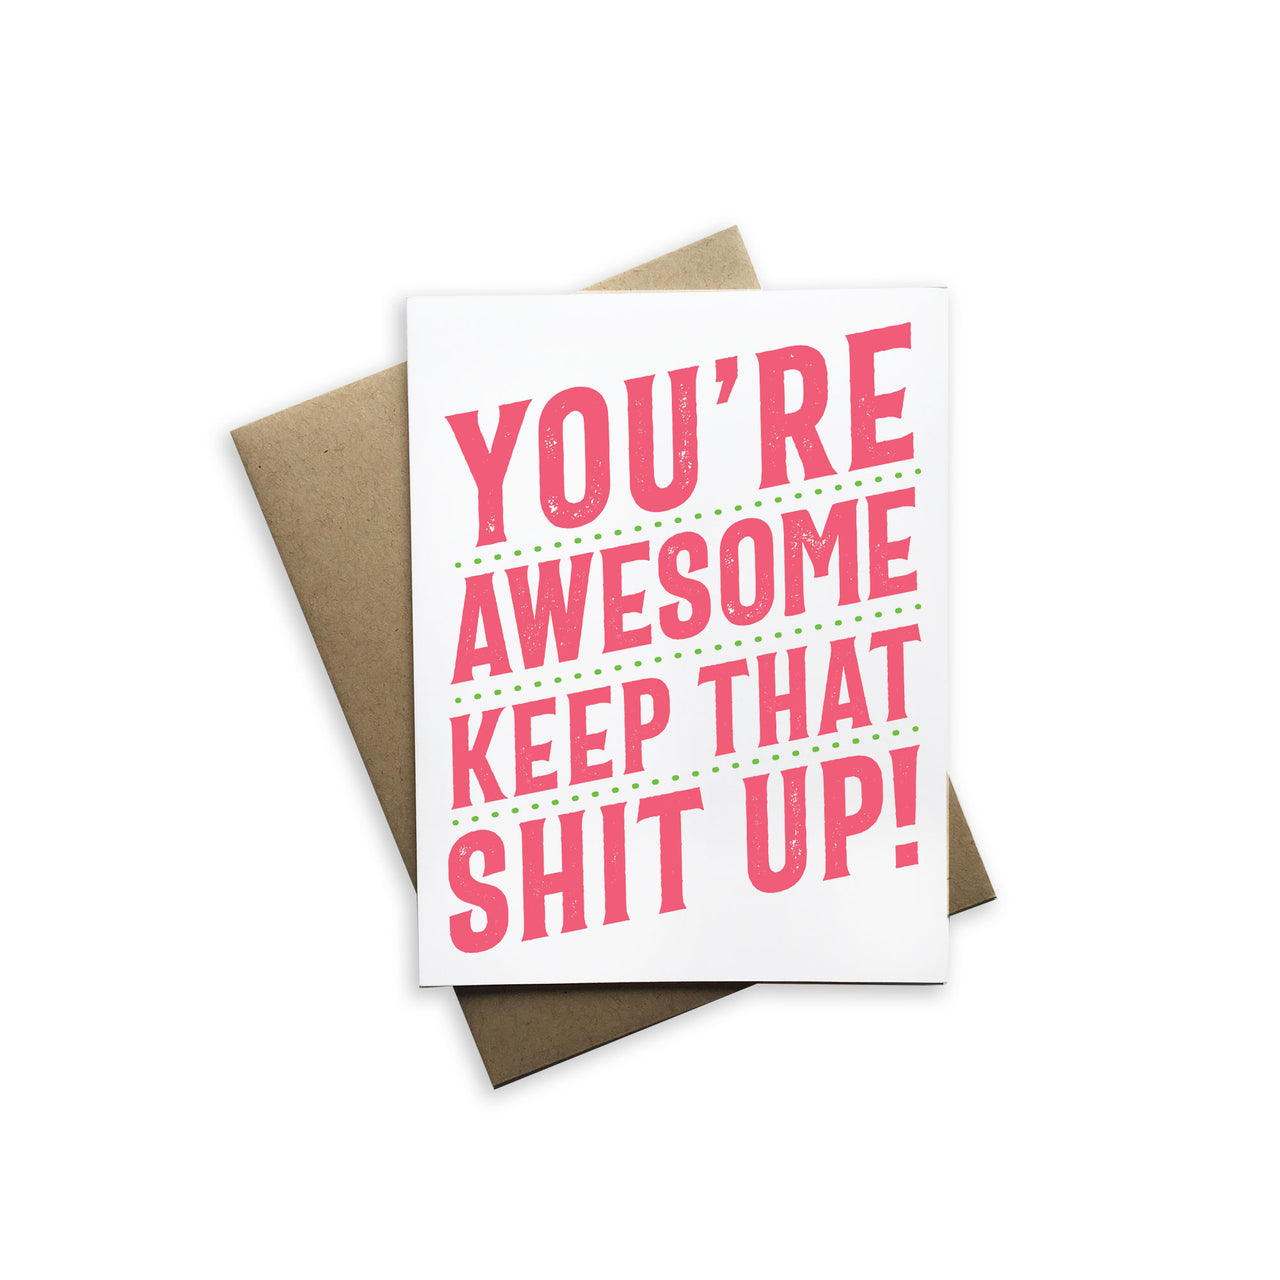 Your Awesome Keep that Shit Up